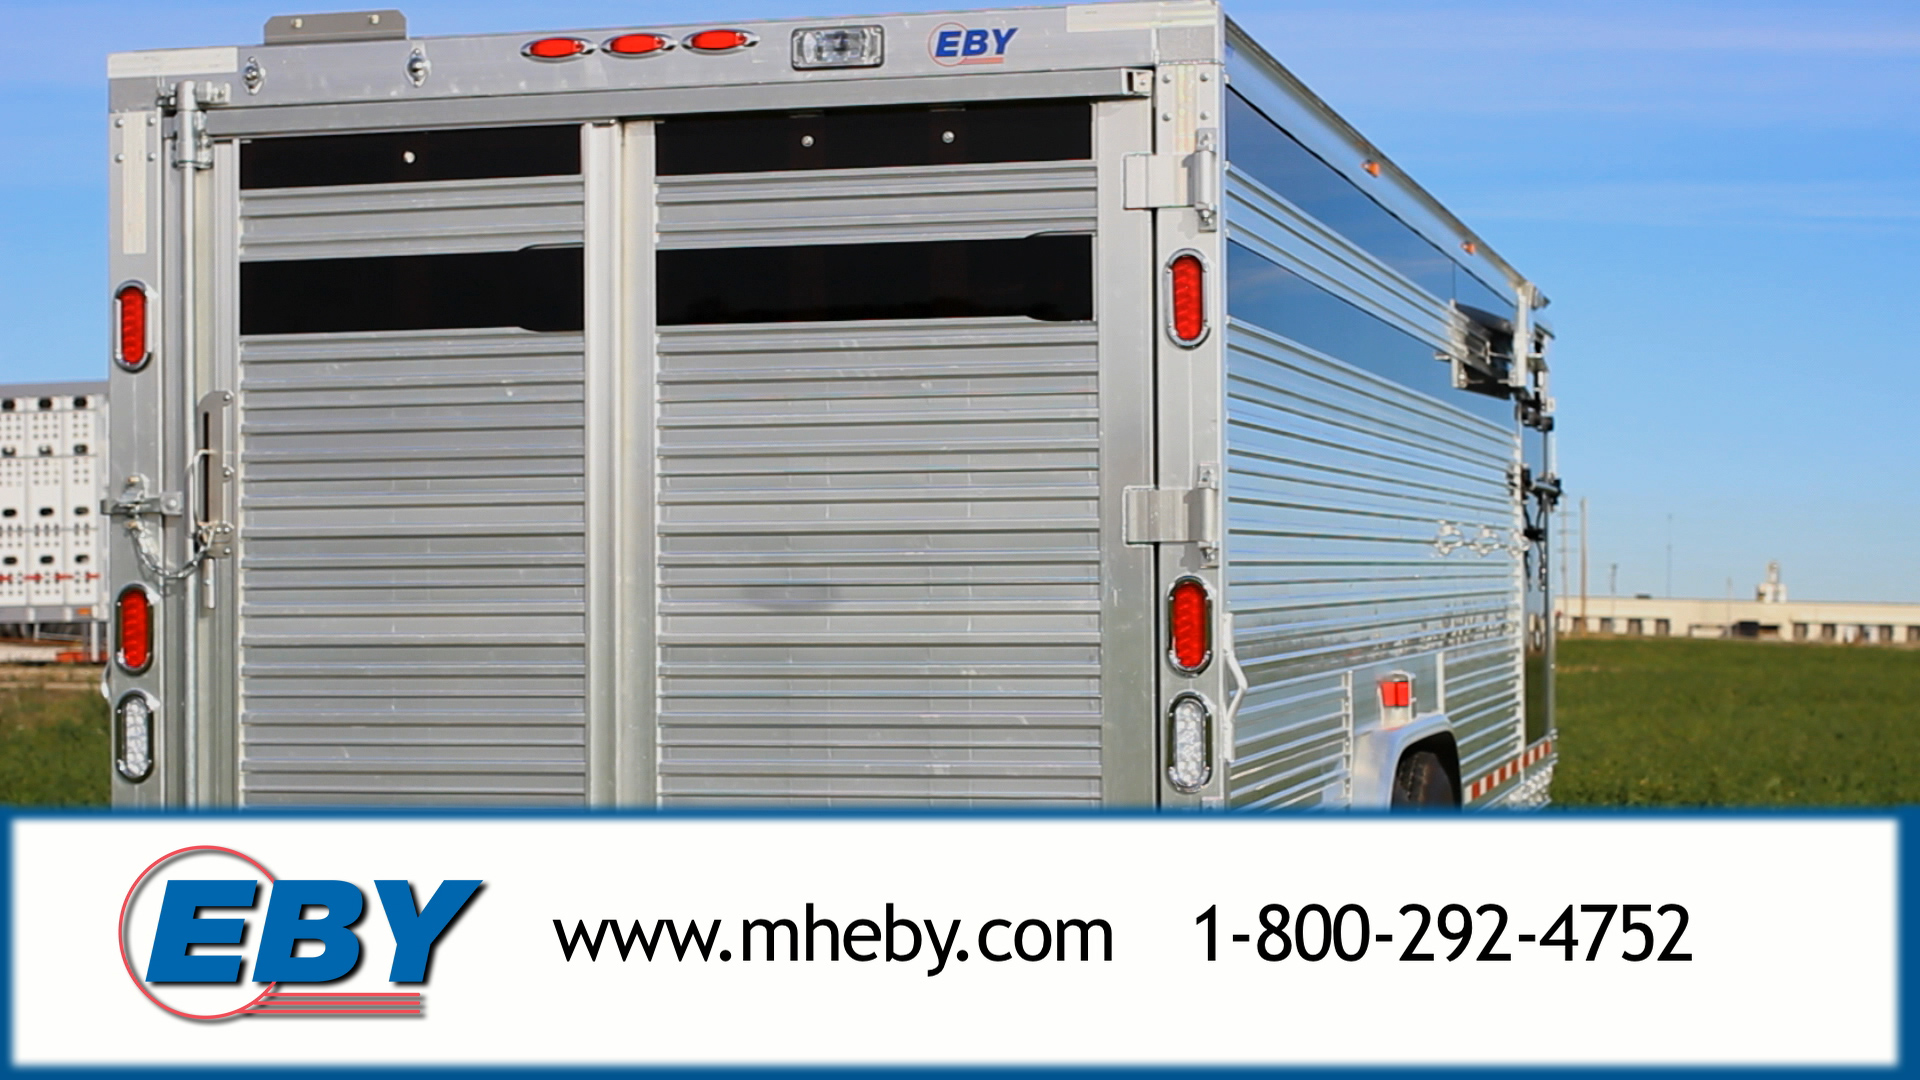 EBY Trailers Commercial